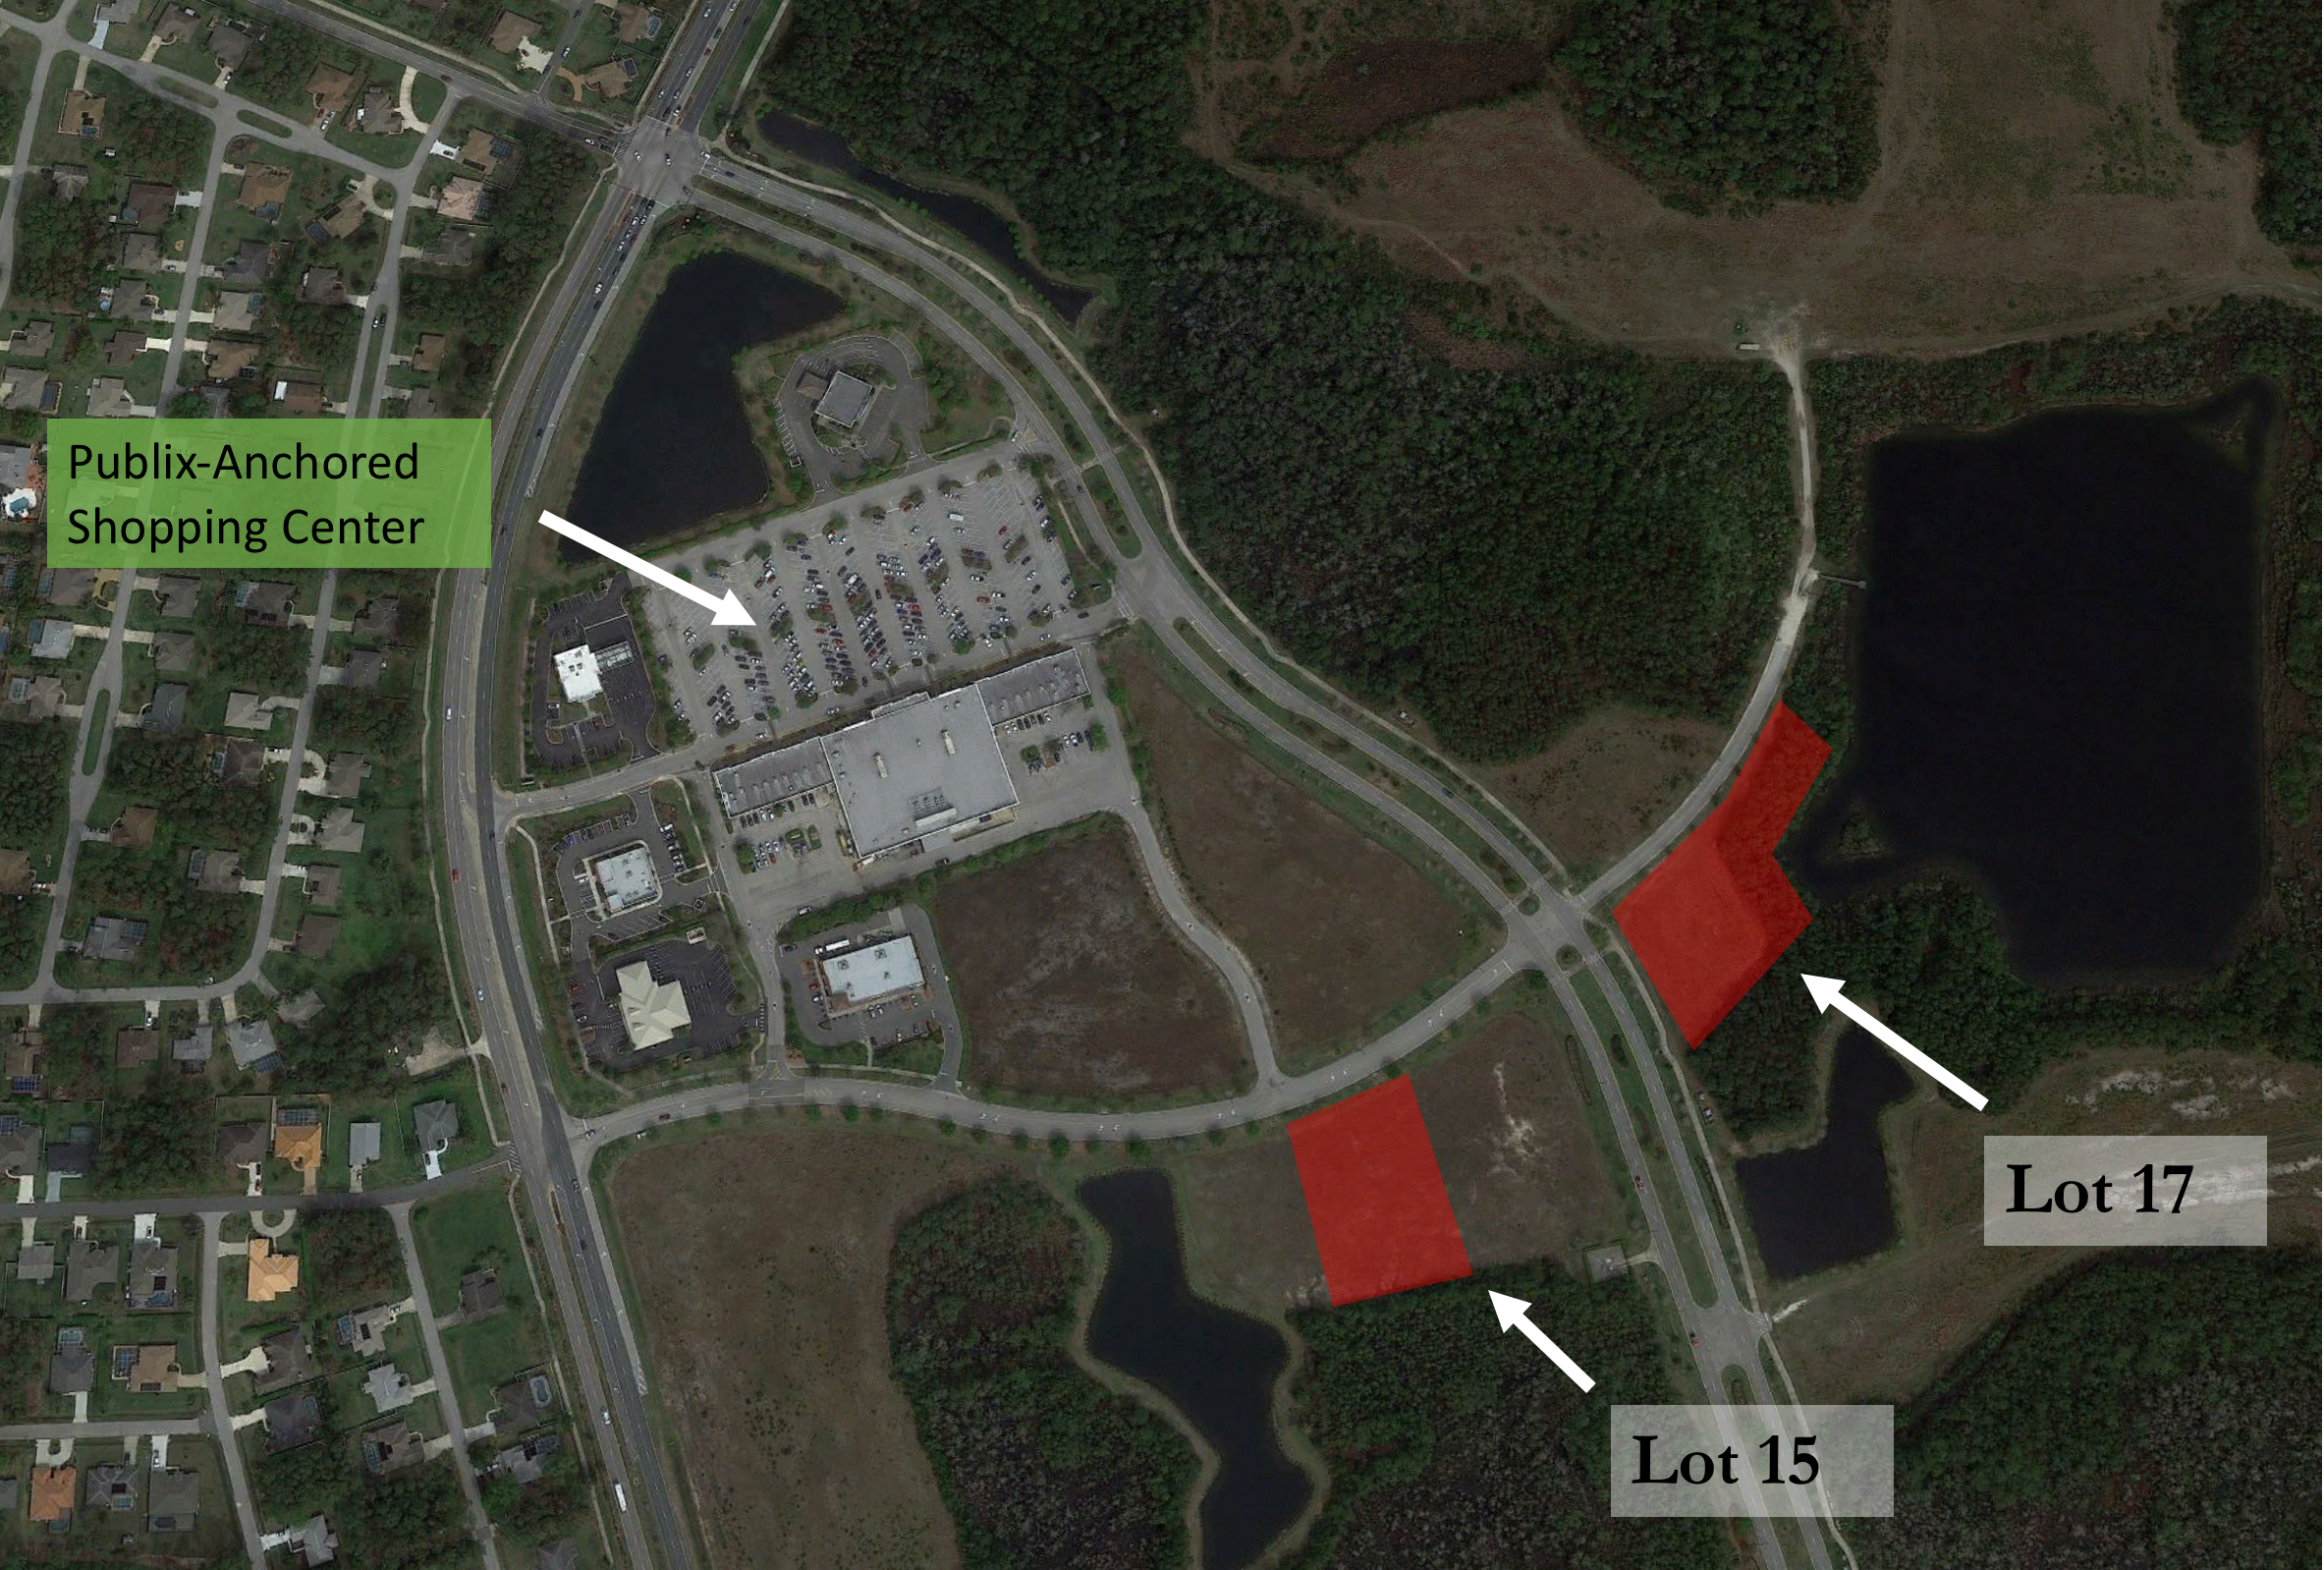 Office Sites - LOT 15                               1.6 +/- Net Acres 17,500sf Office Entitled$350,000Lot 17                                1.1 +/- Net Acres 10,000sf Office Entitled$400,000